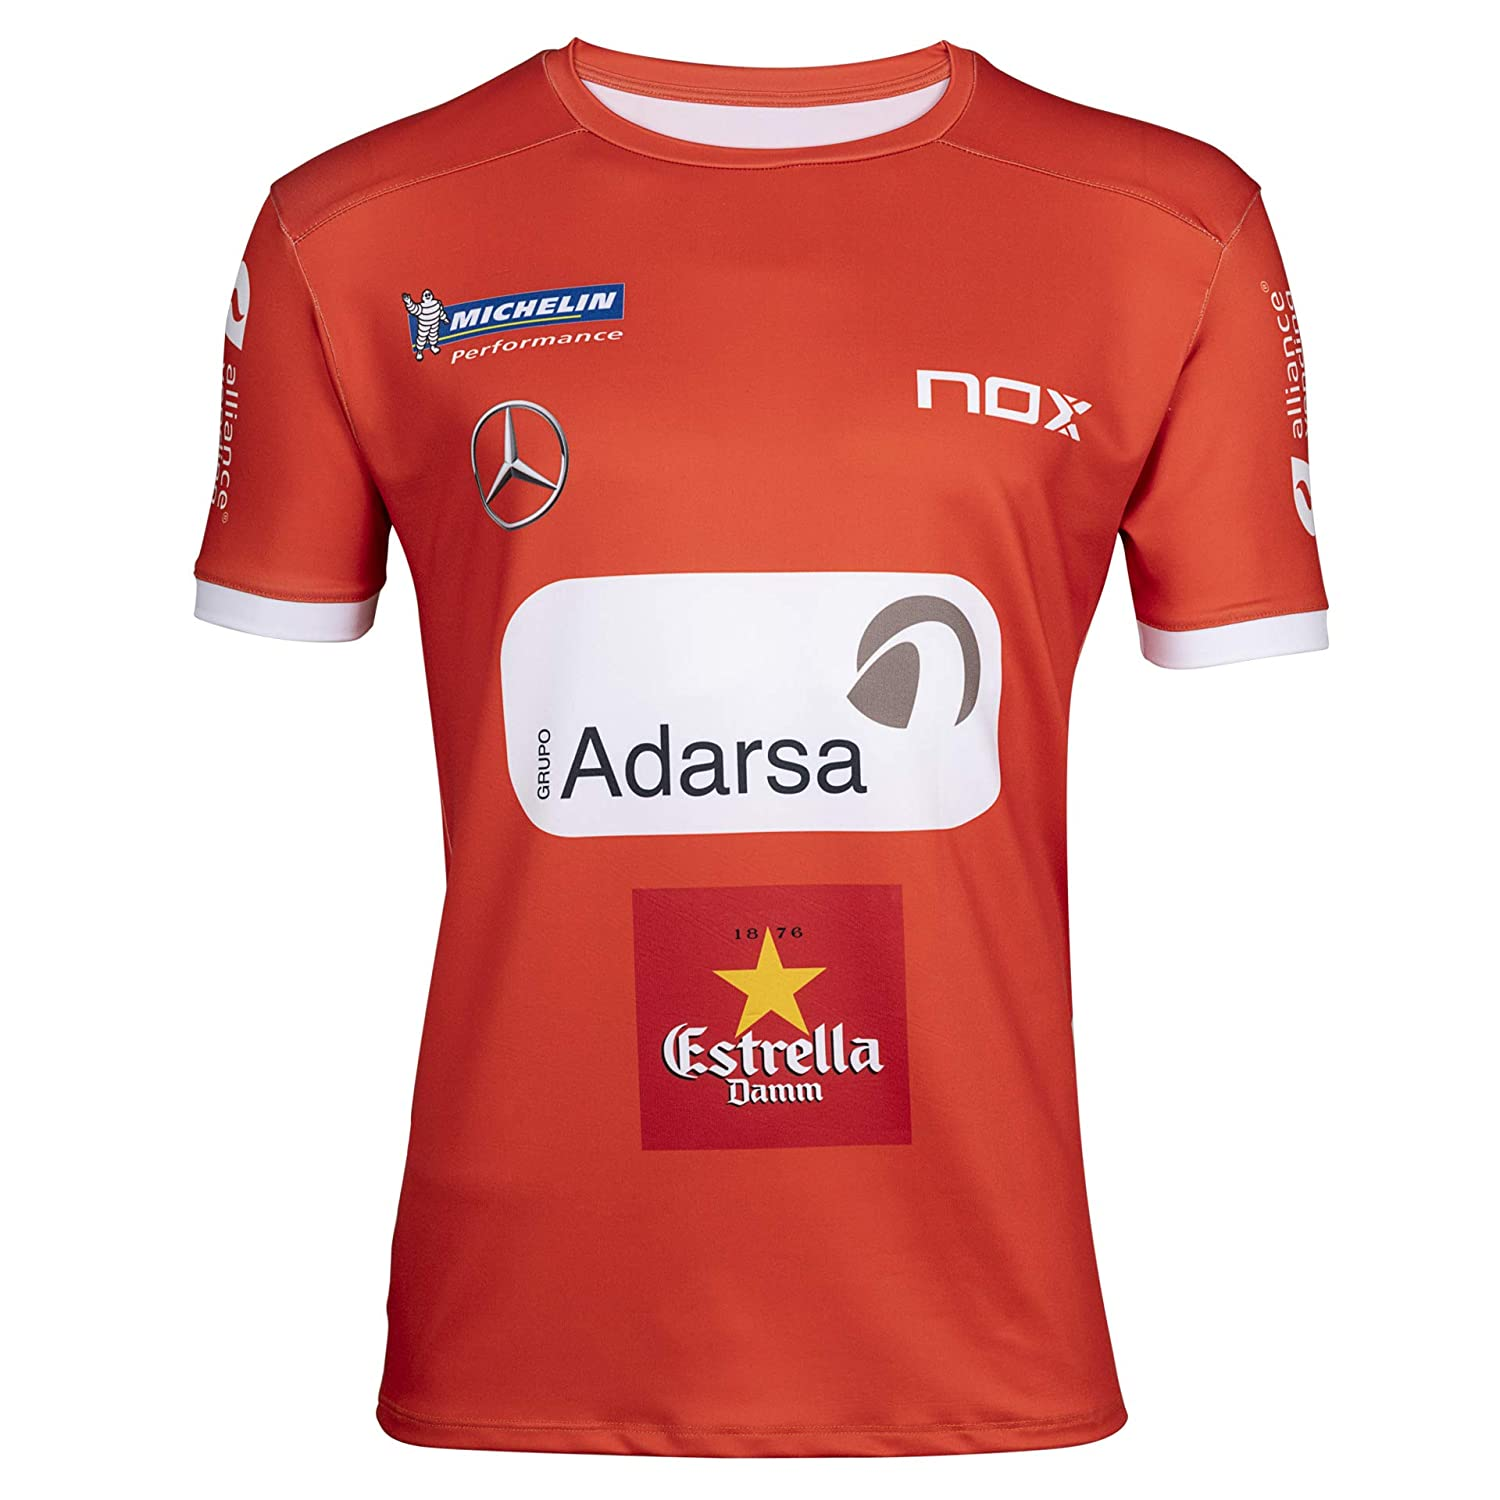 NOX Camiseta Sponsor ML Team Rojo: Amazon.es: Deportes y aire libre